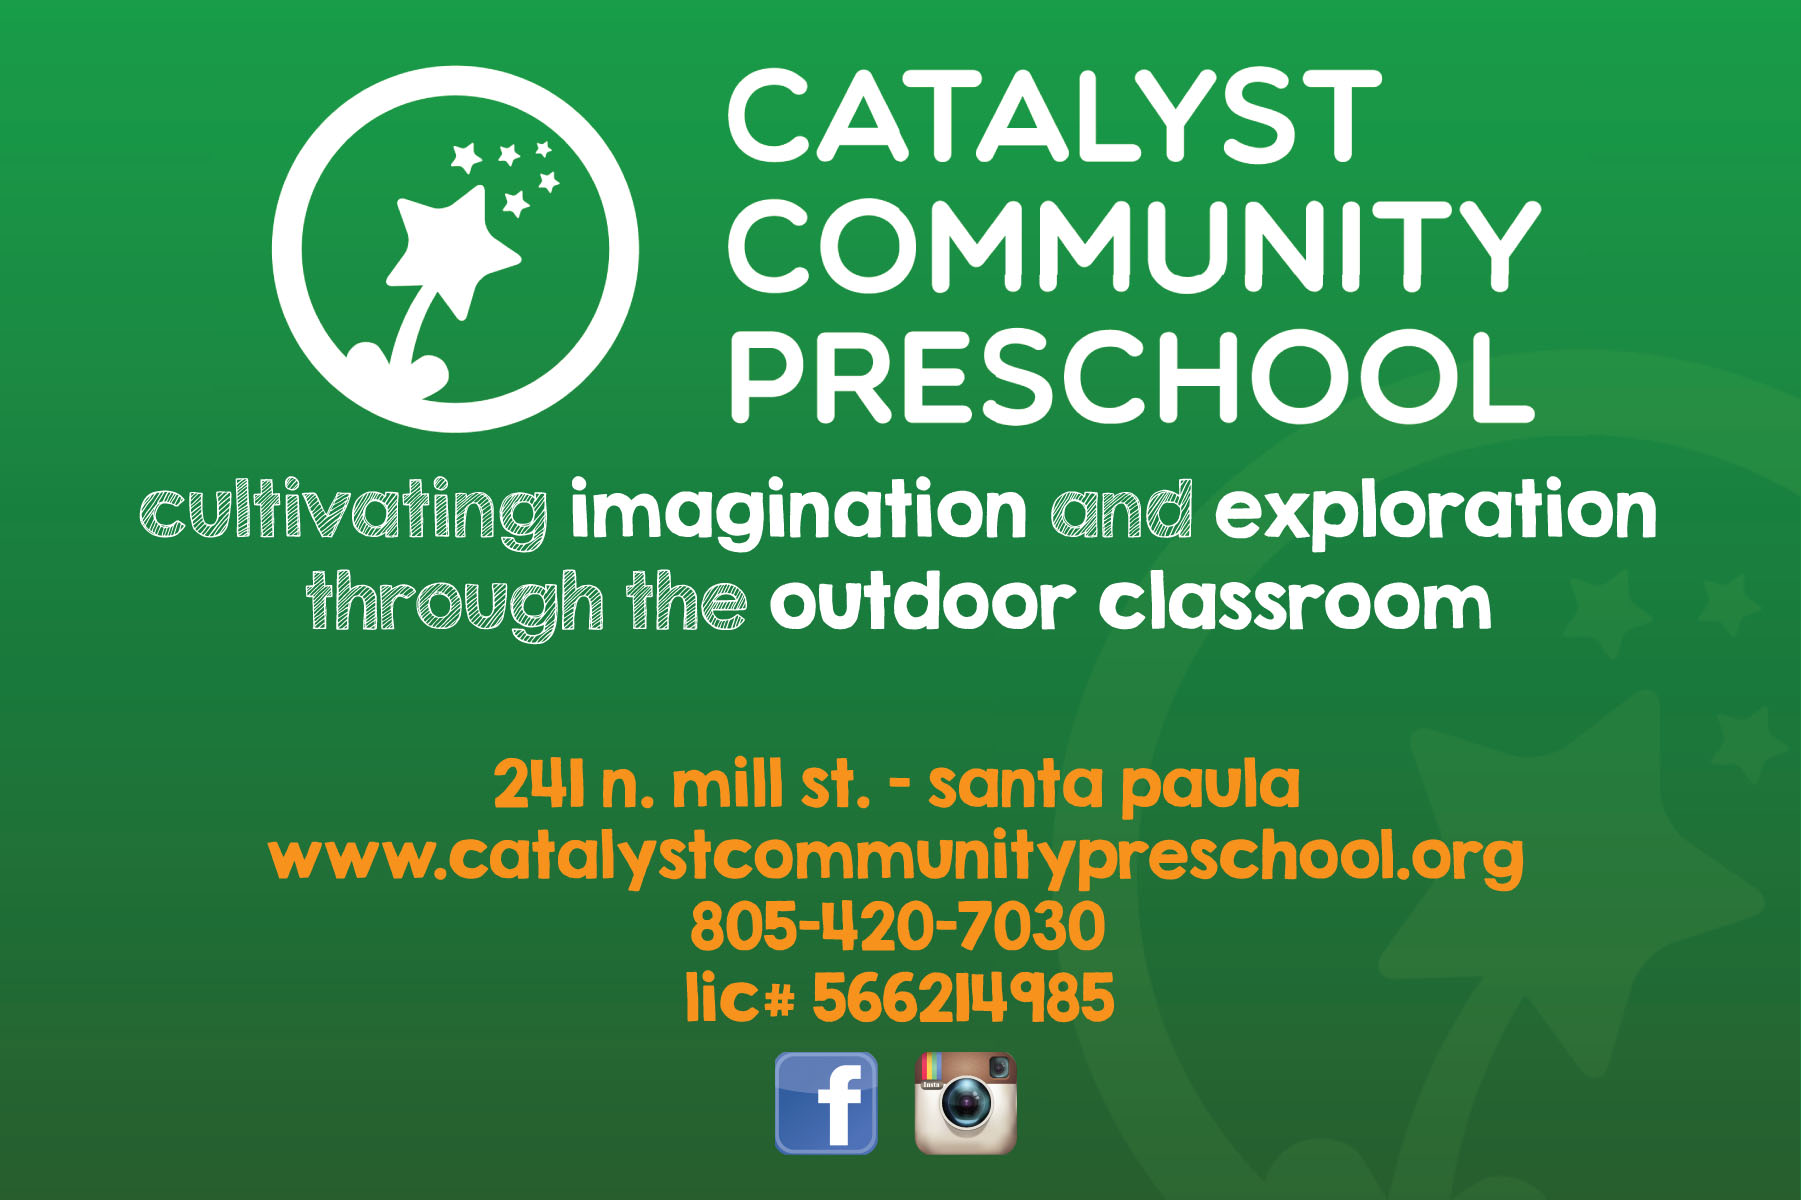 Catalyst Community Preschool Santa Paula